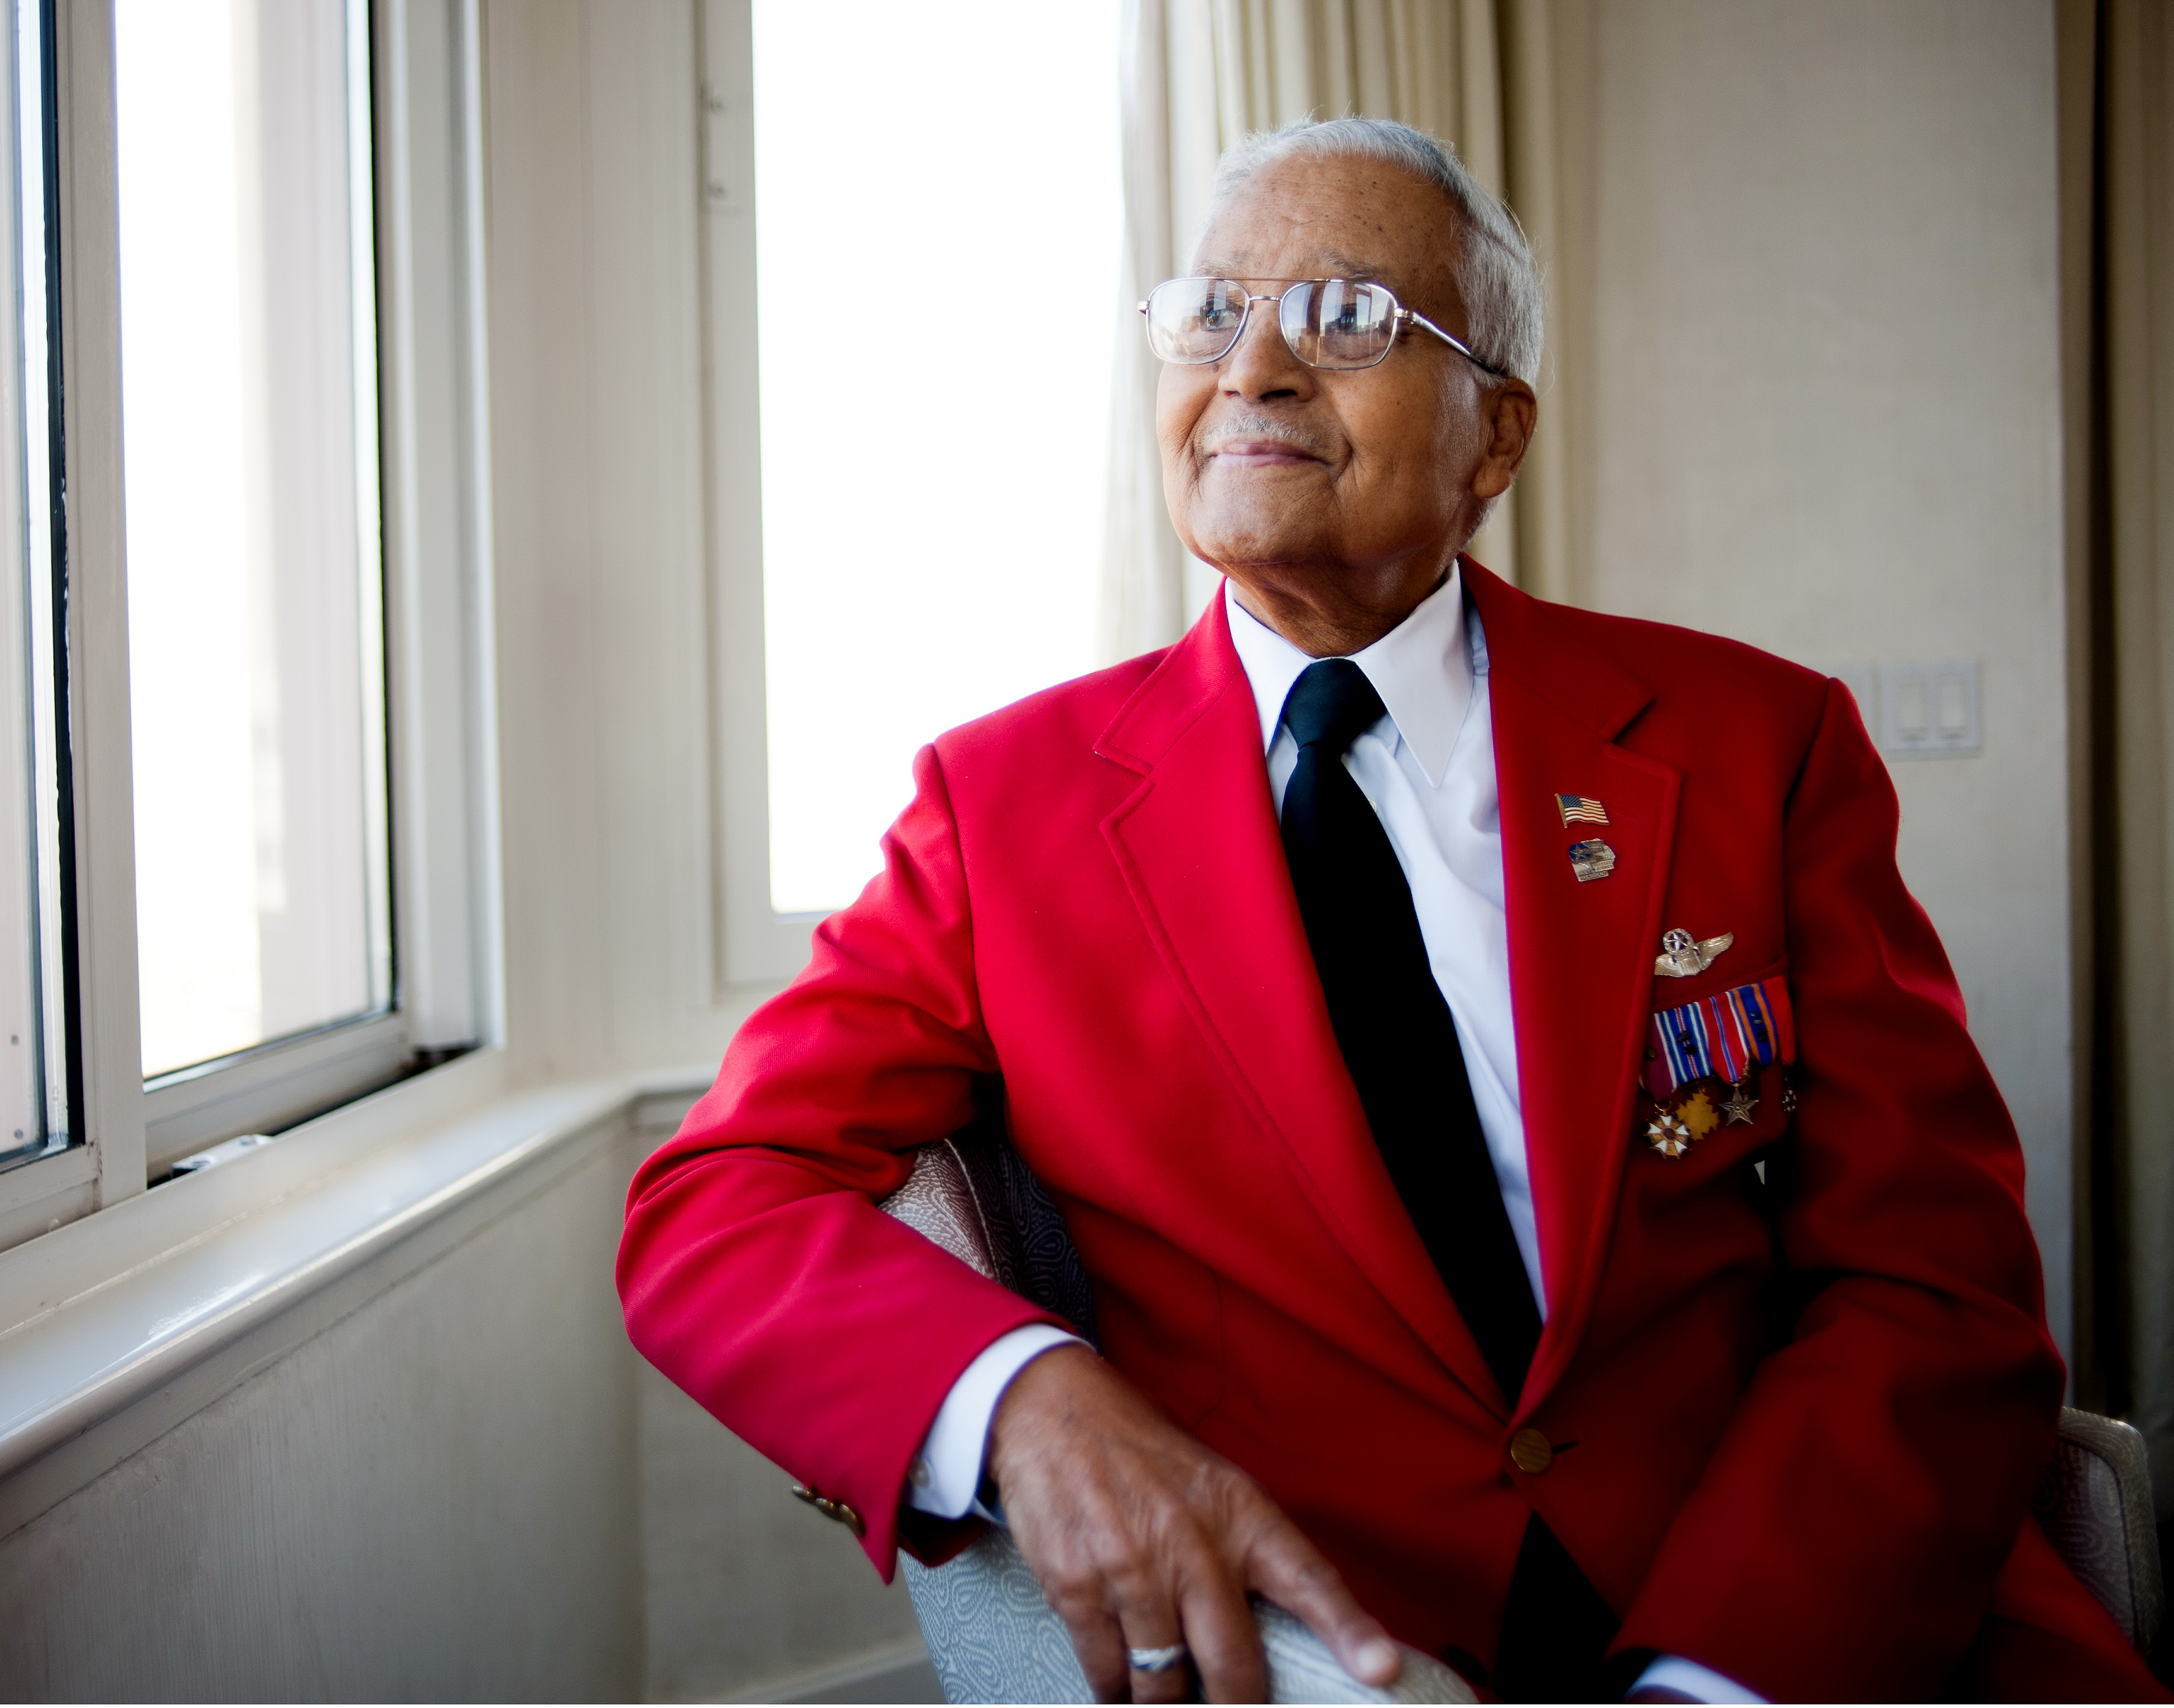 Tuskegee Airman retired Col. Charles McGee